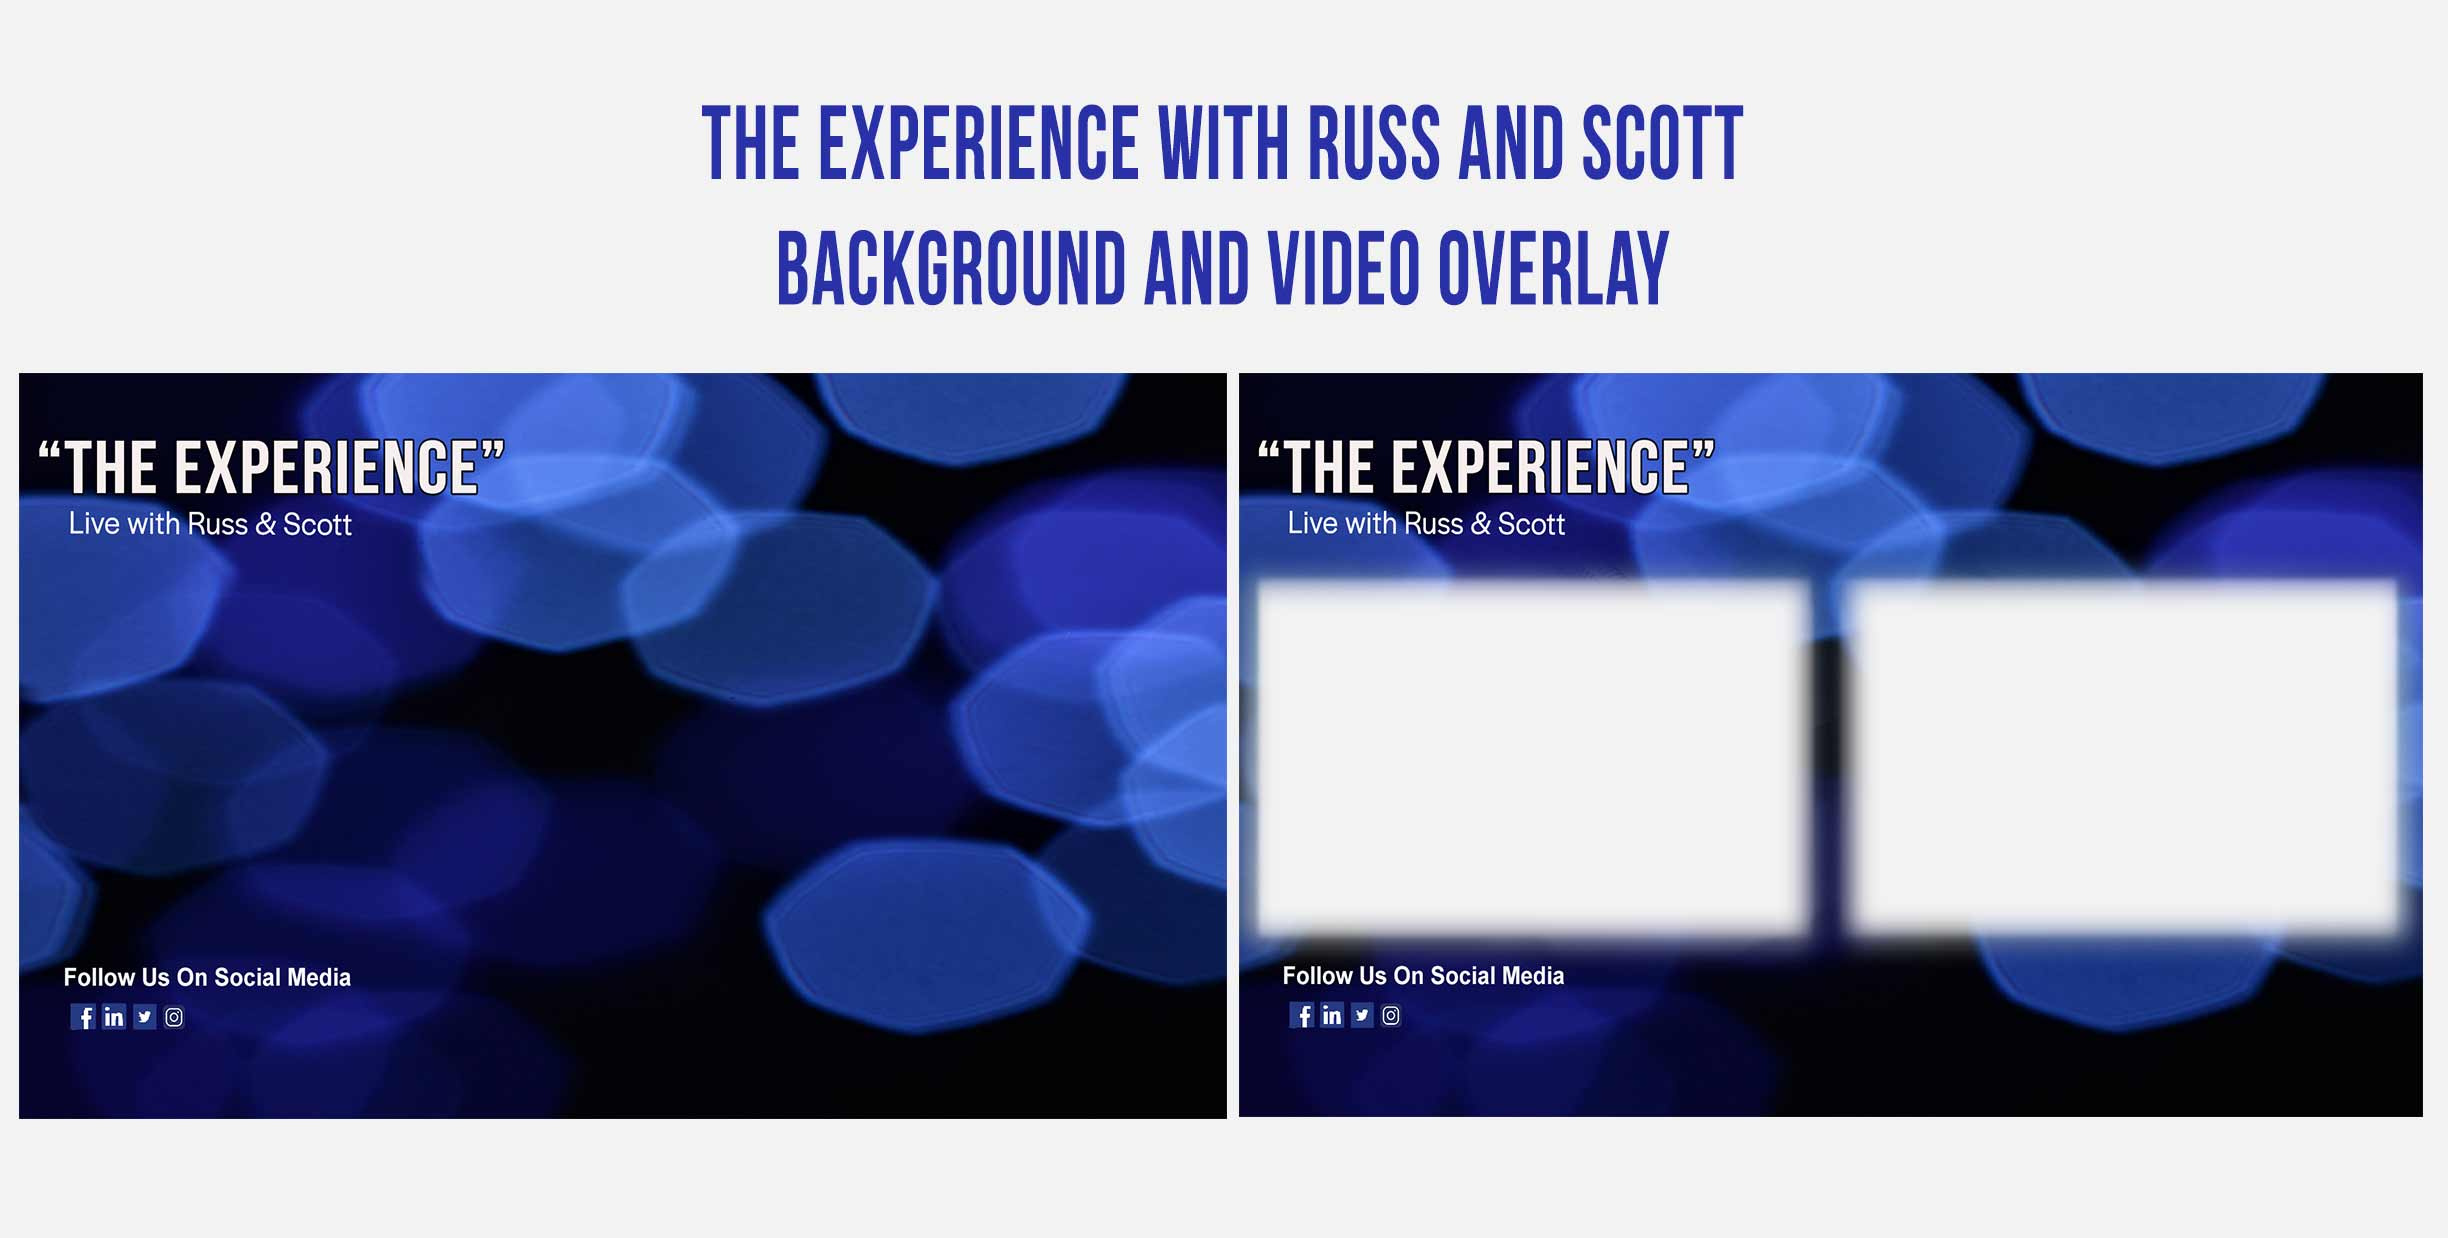 The Experience with Russ and Scott Graphic Design Backgrounds and Overlays from Kompass Media Dublin Ireland